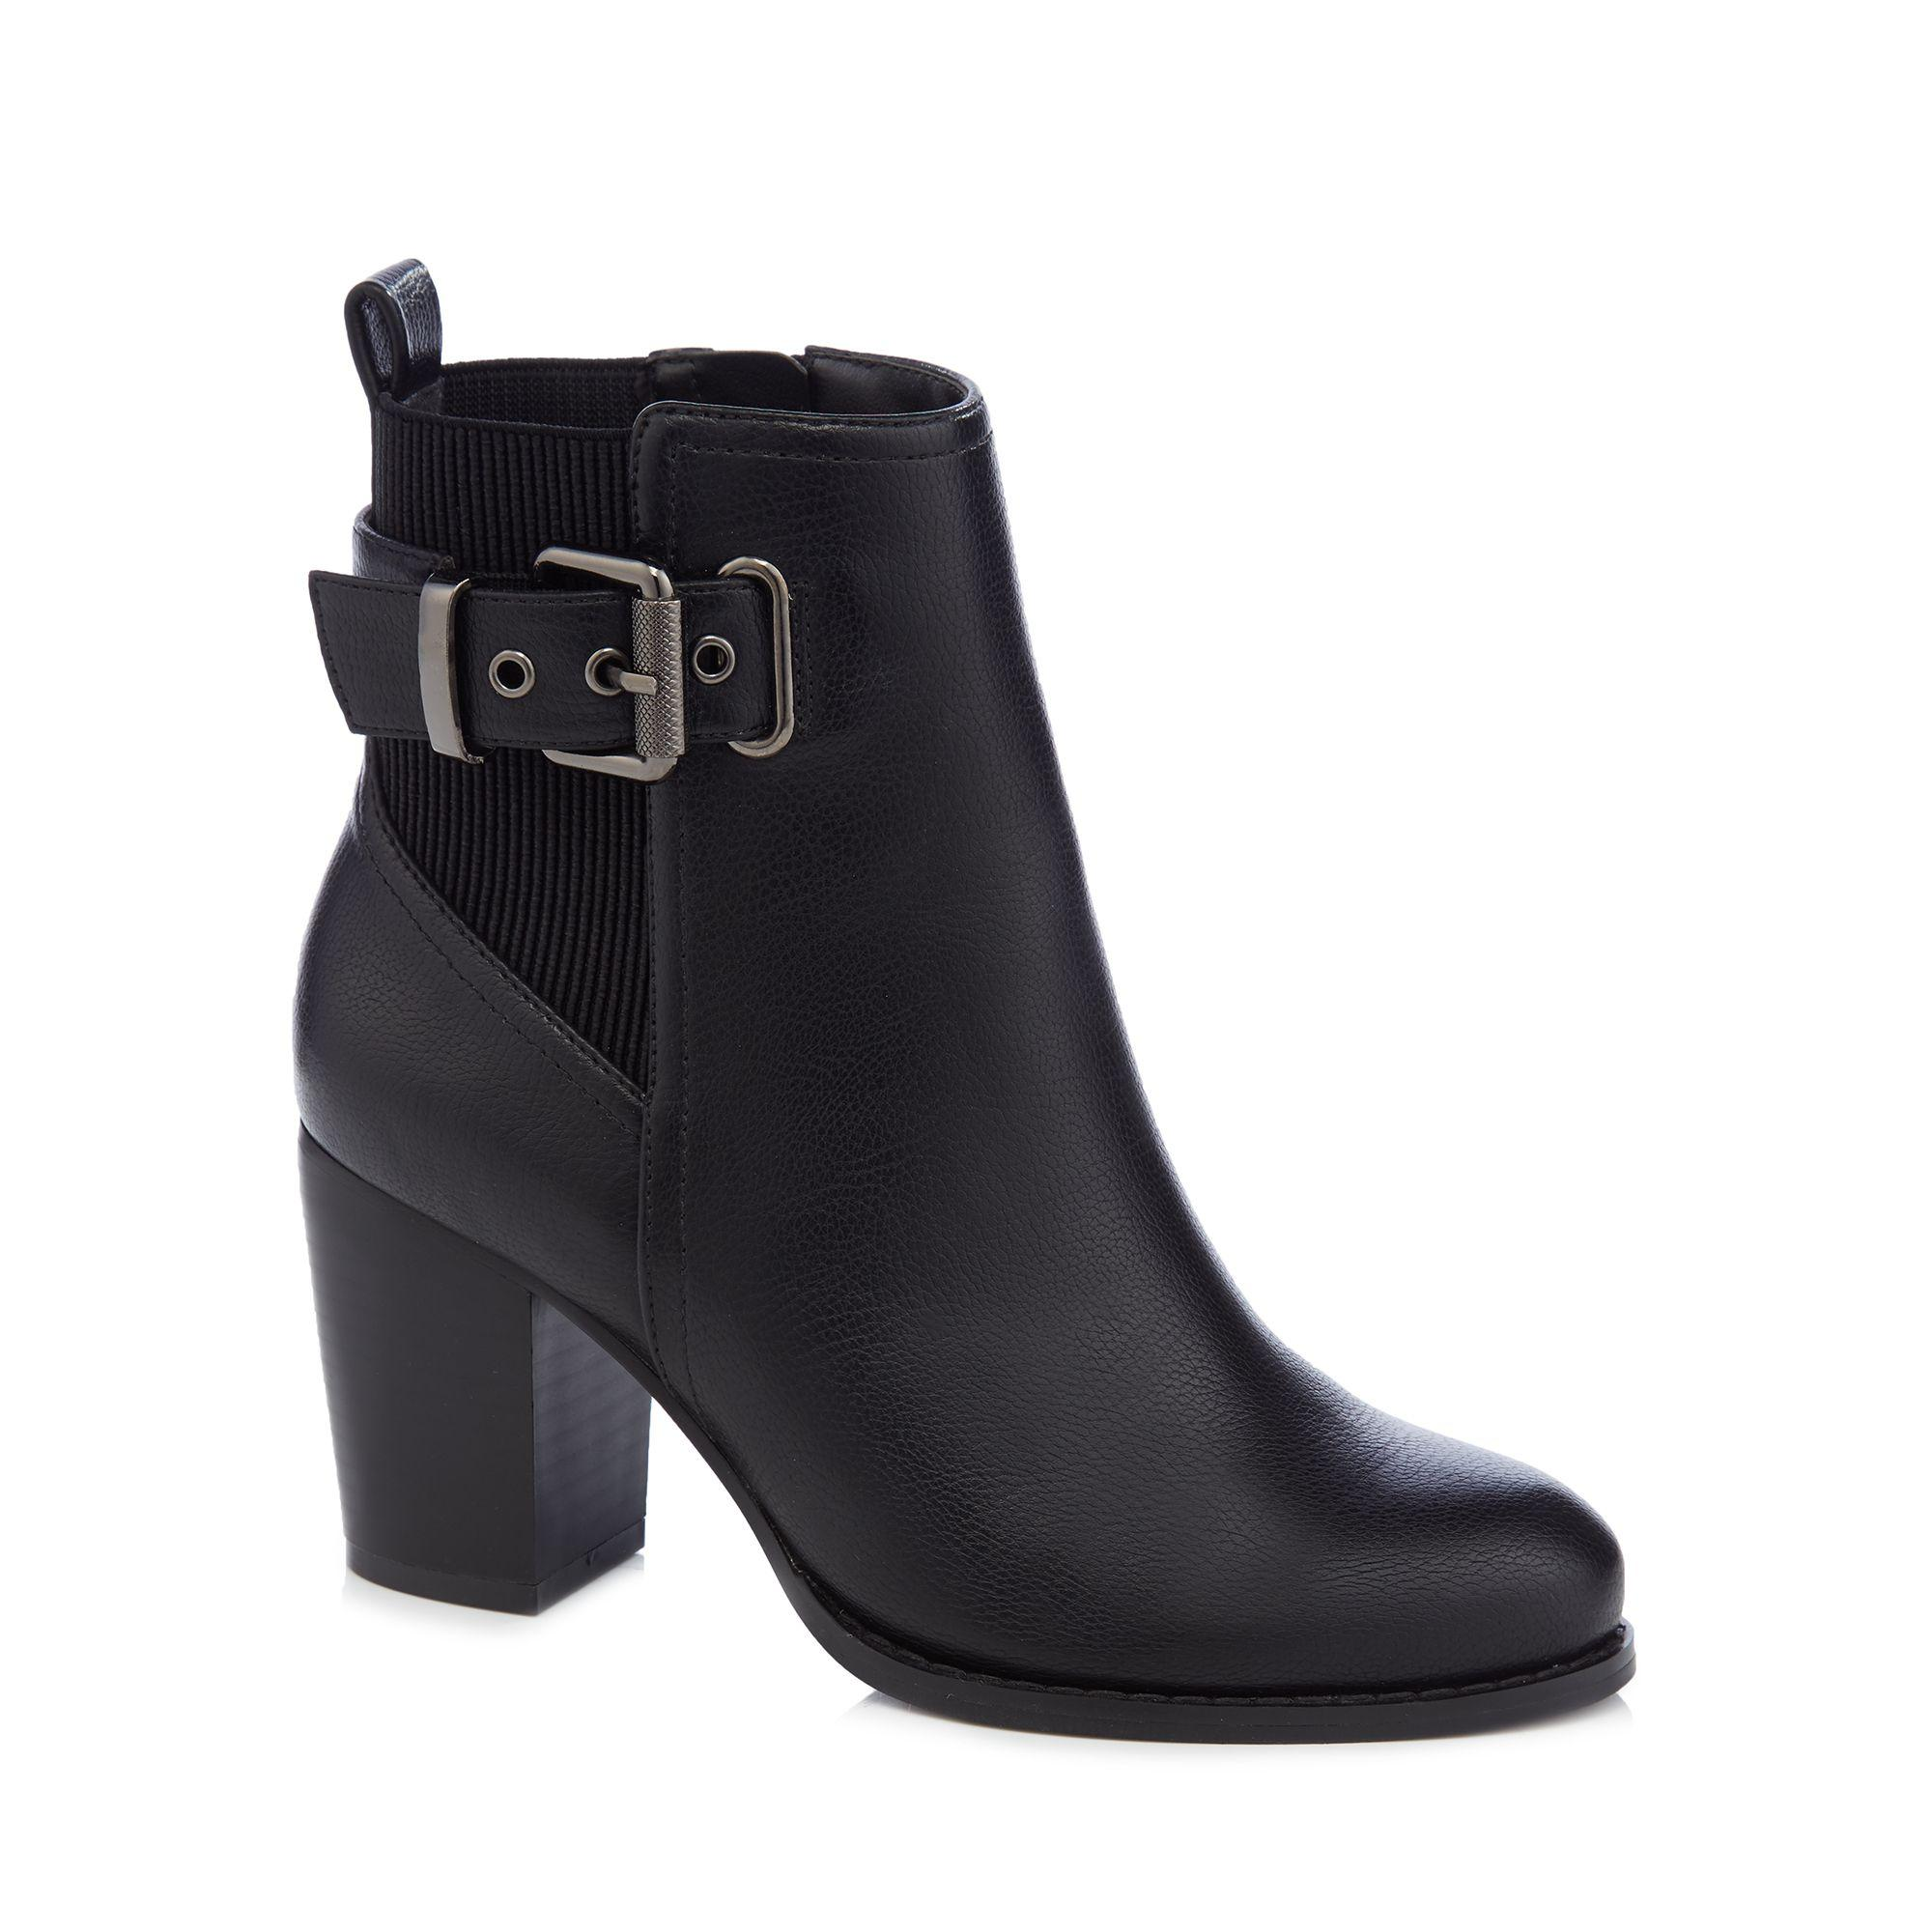 f51734e11b Faith - Black Faux Leather 'wand' High Block Heel Wide Fit Ankle Boots -.  View fullscreen